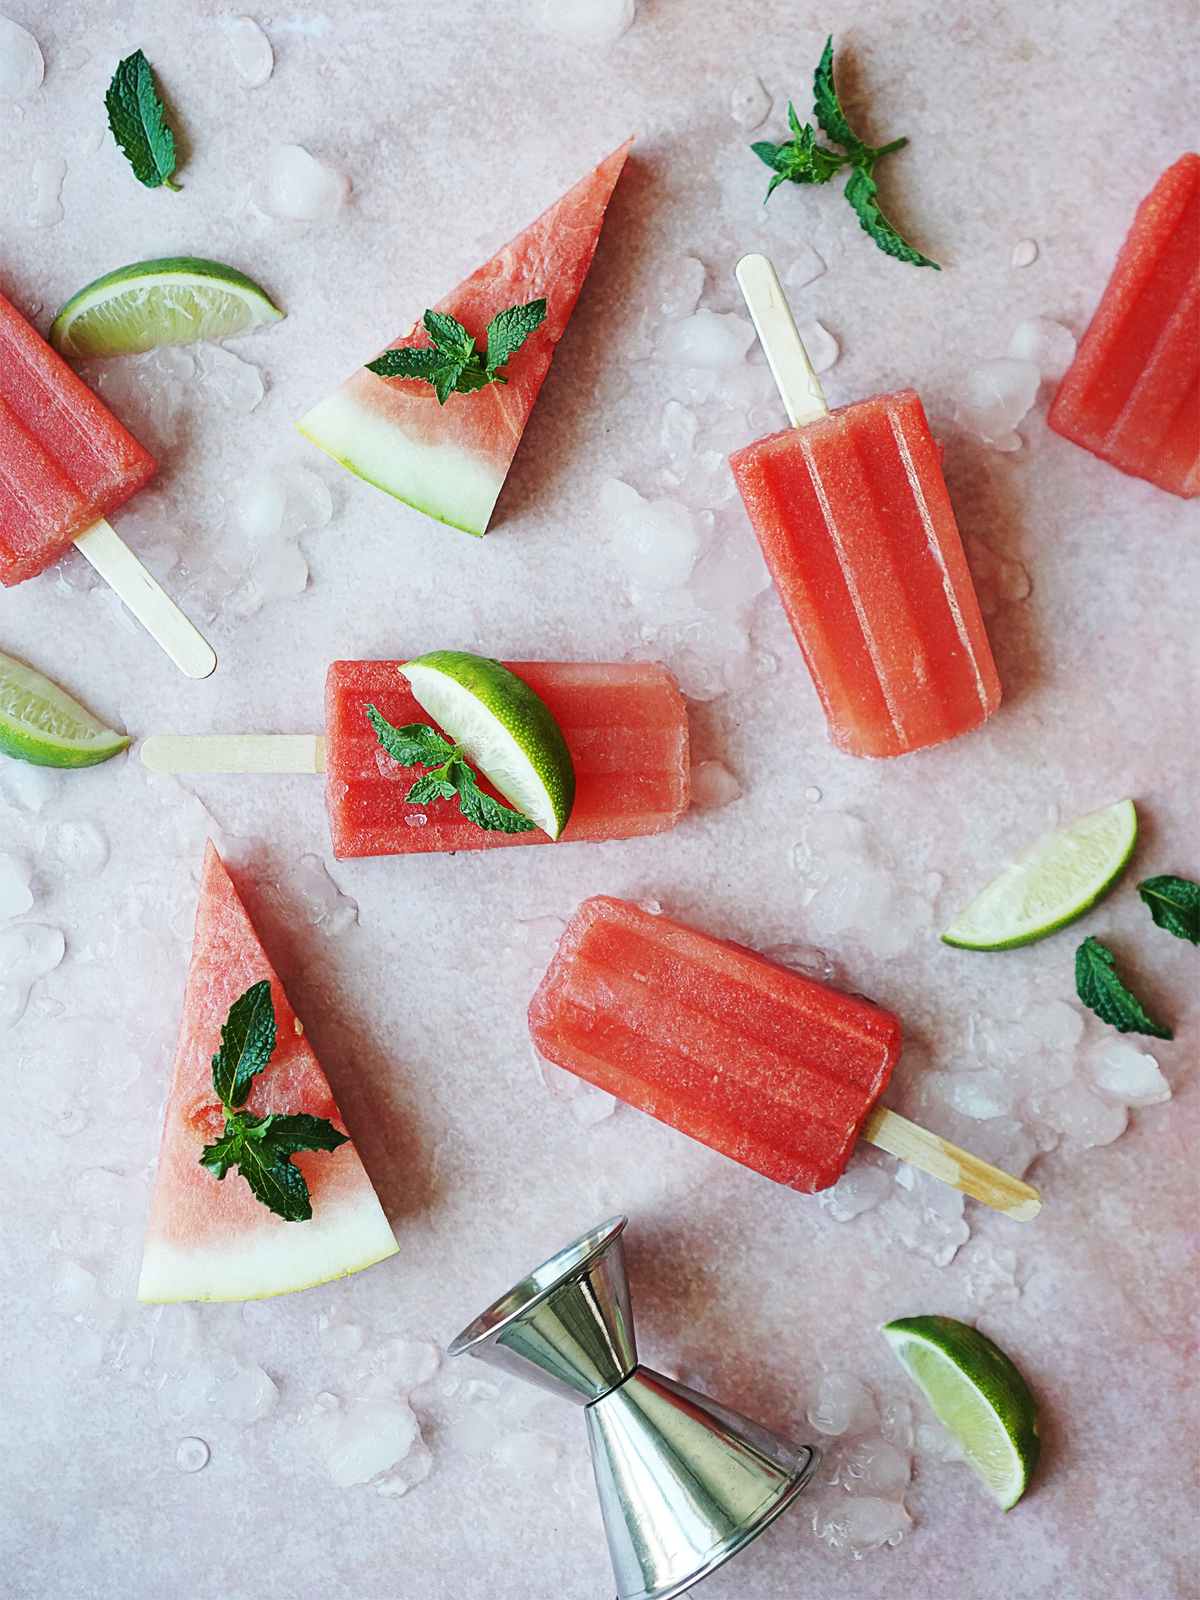 watermelons and popsicles scattered on a pink background